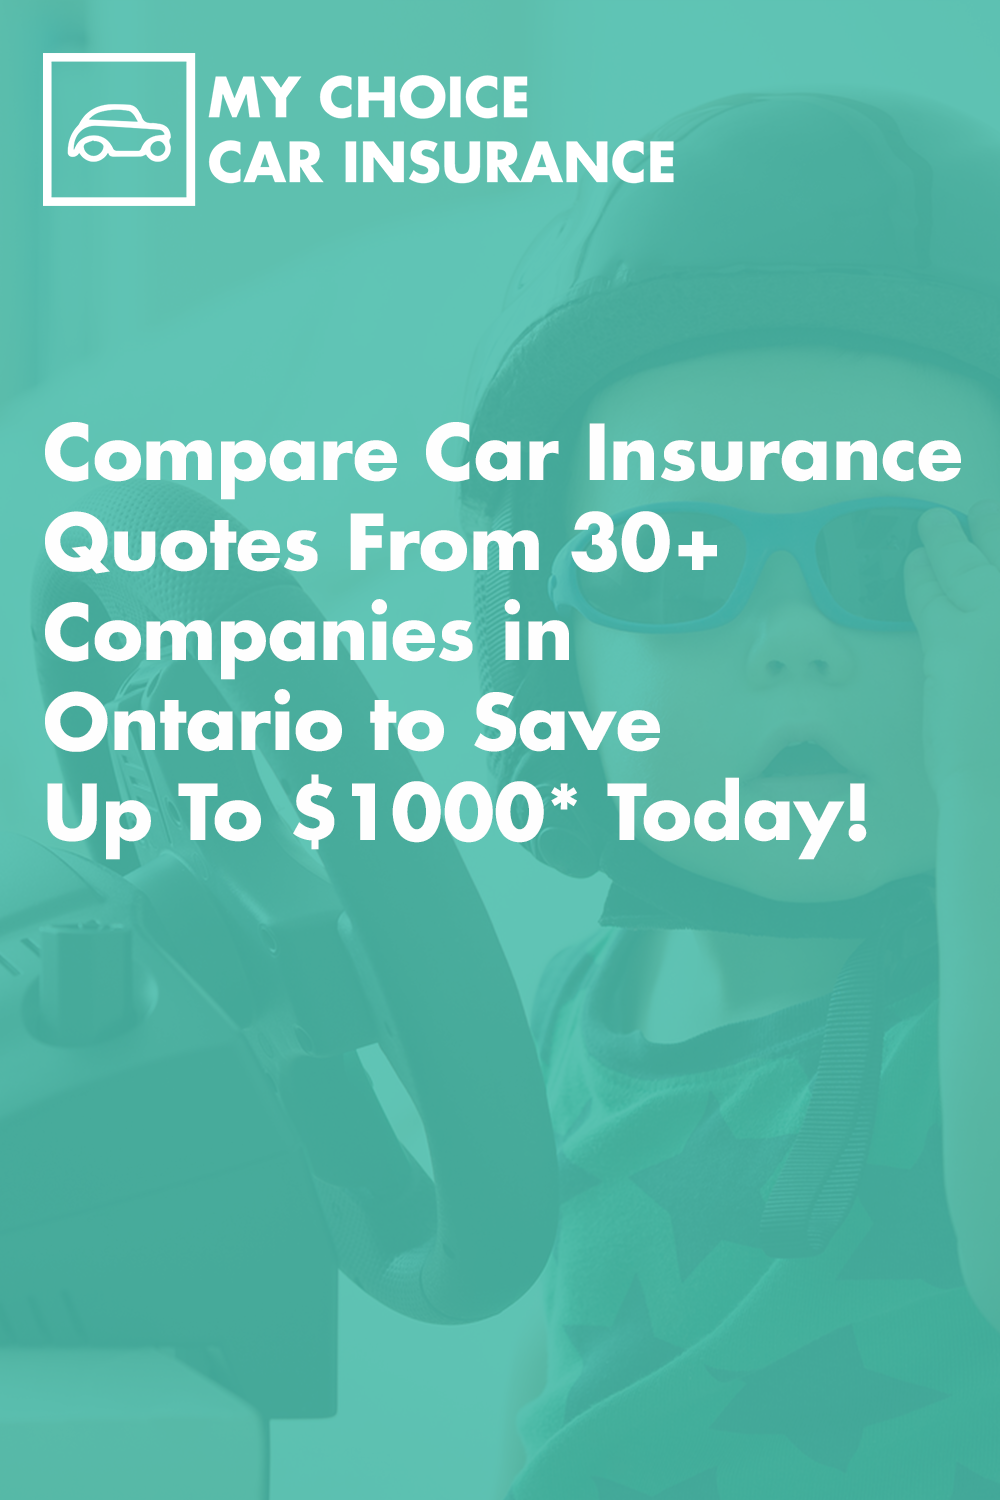 Compare Car Insurance Quotes In Ontario Today To Save Up To 1000